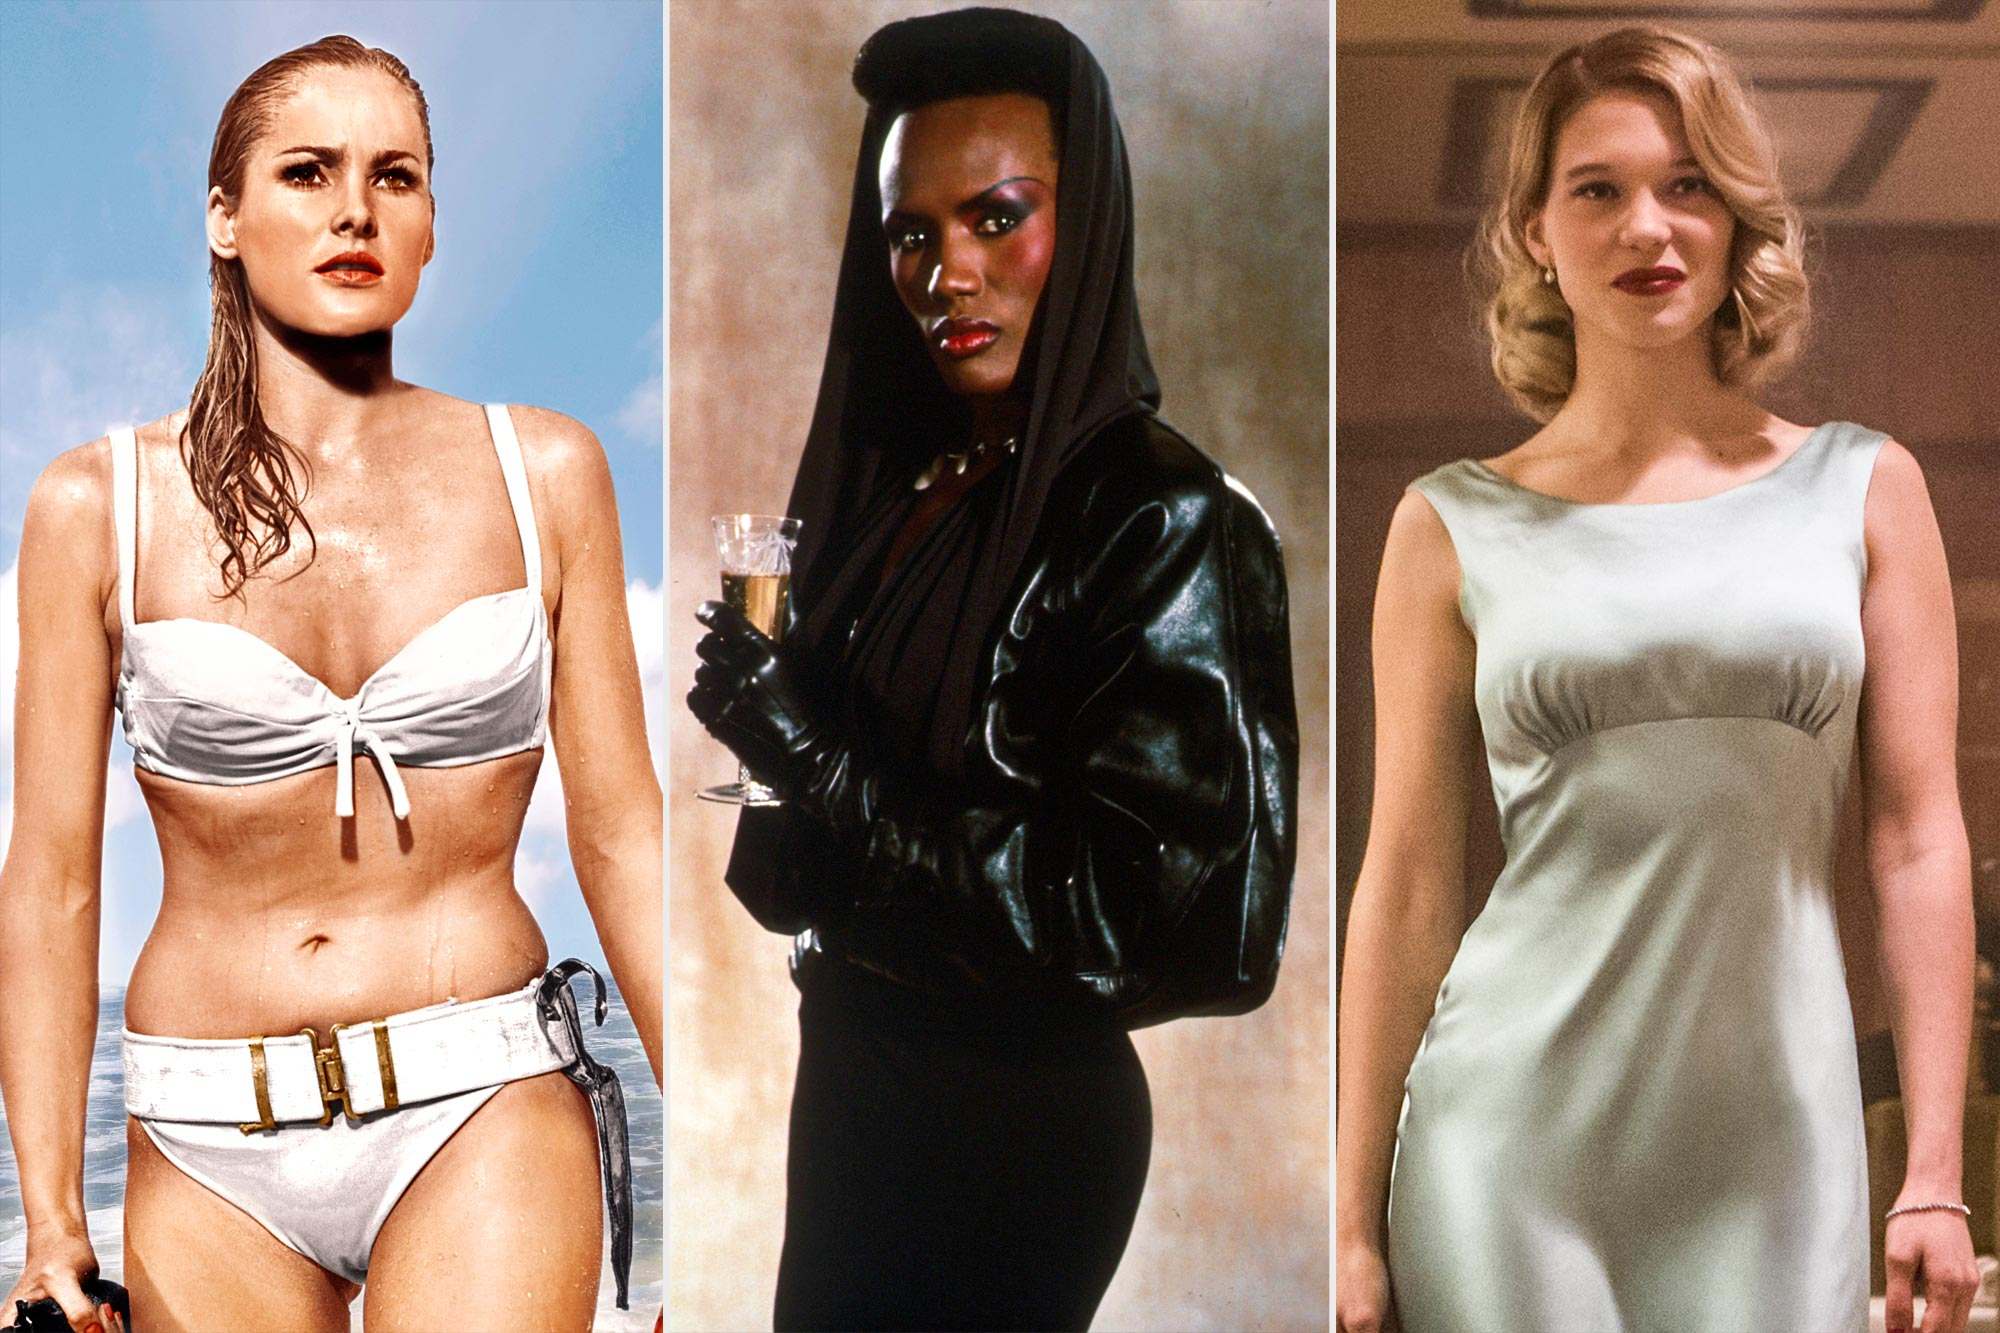 Ursula Andress in Dr. No, Grace Jones in A View to a Kill , and Lea Seydoux in Spectre